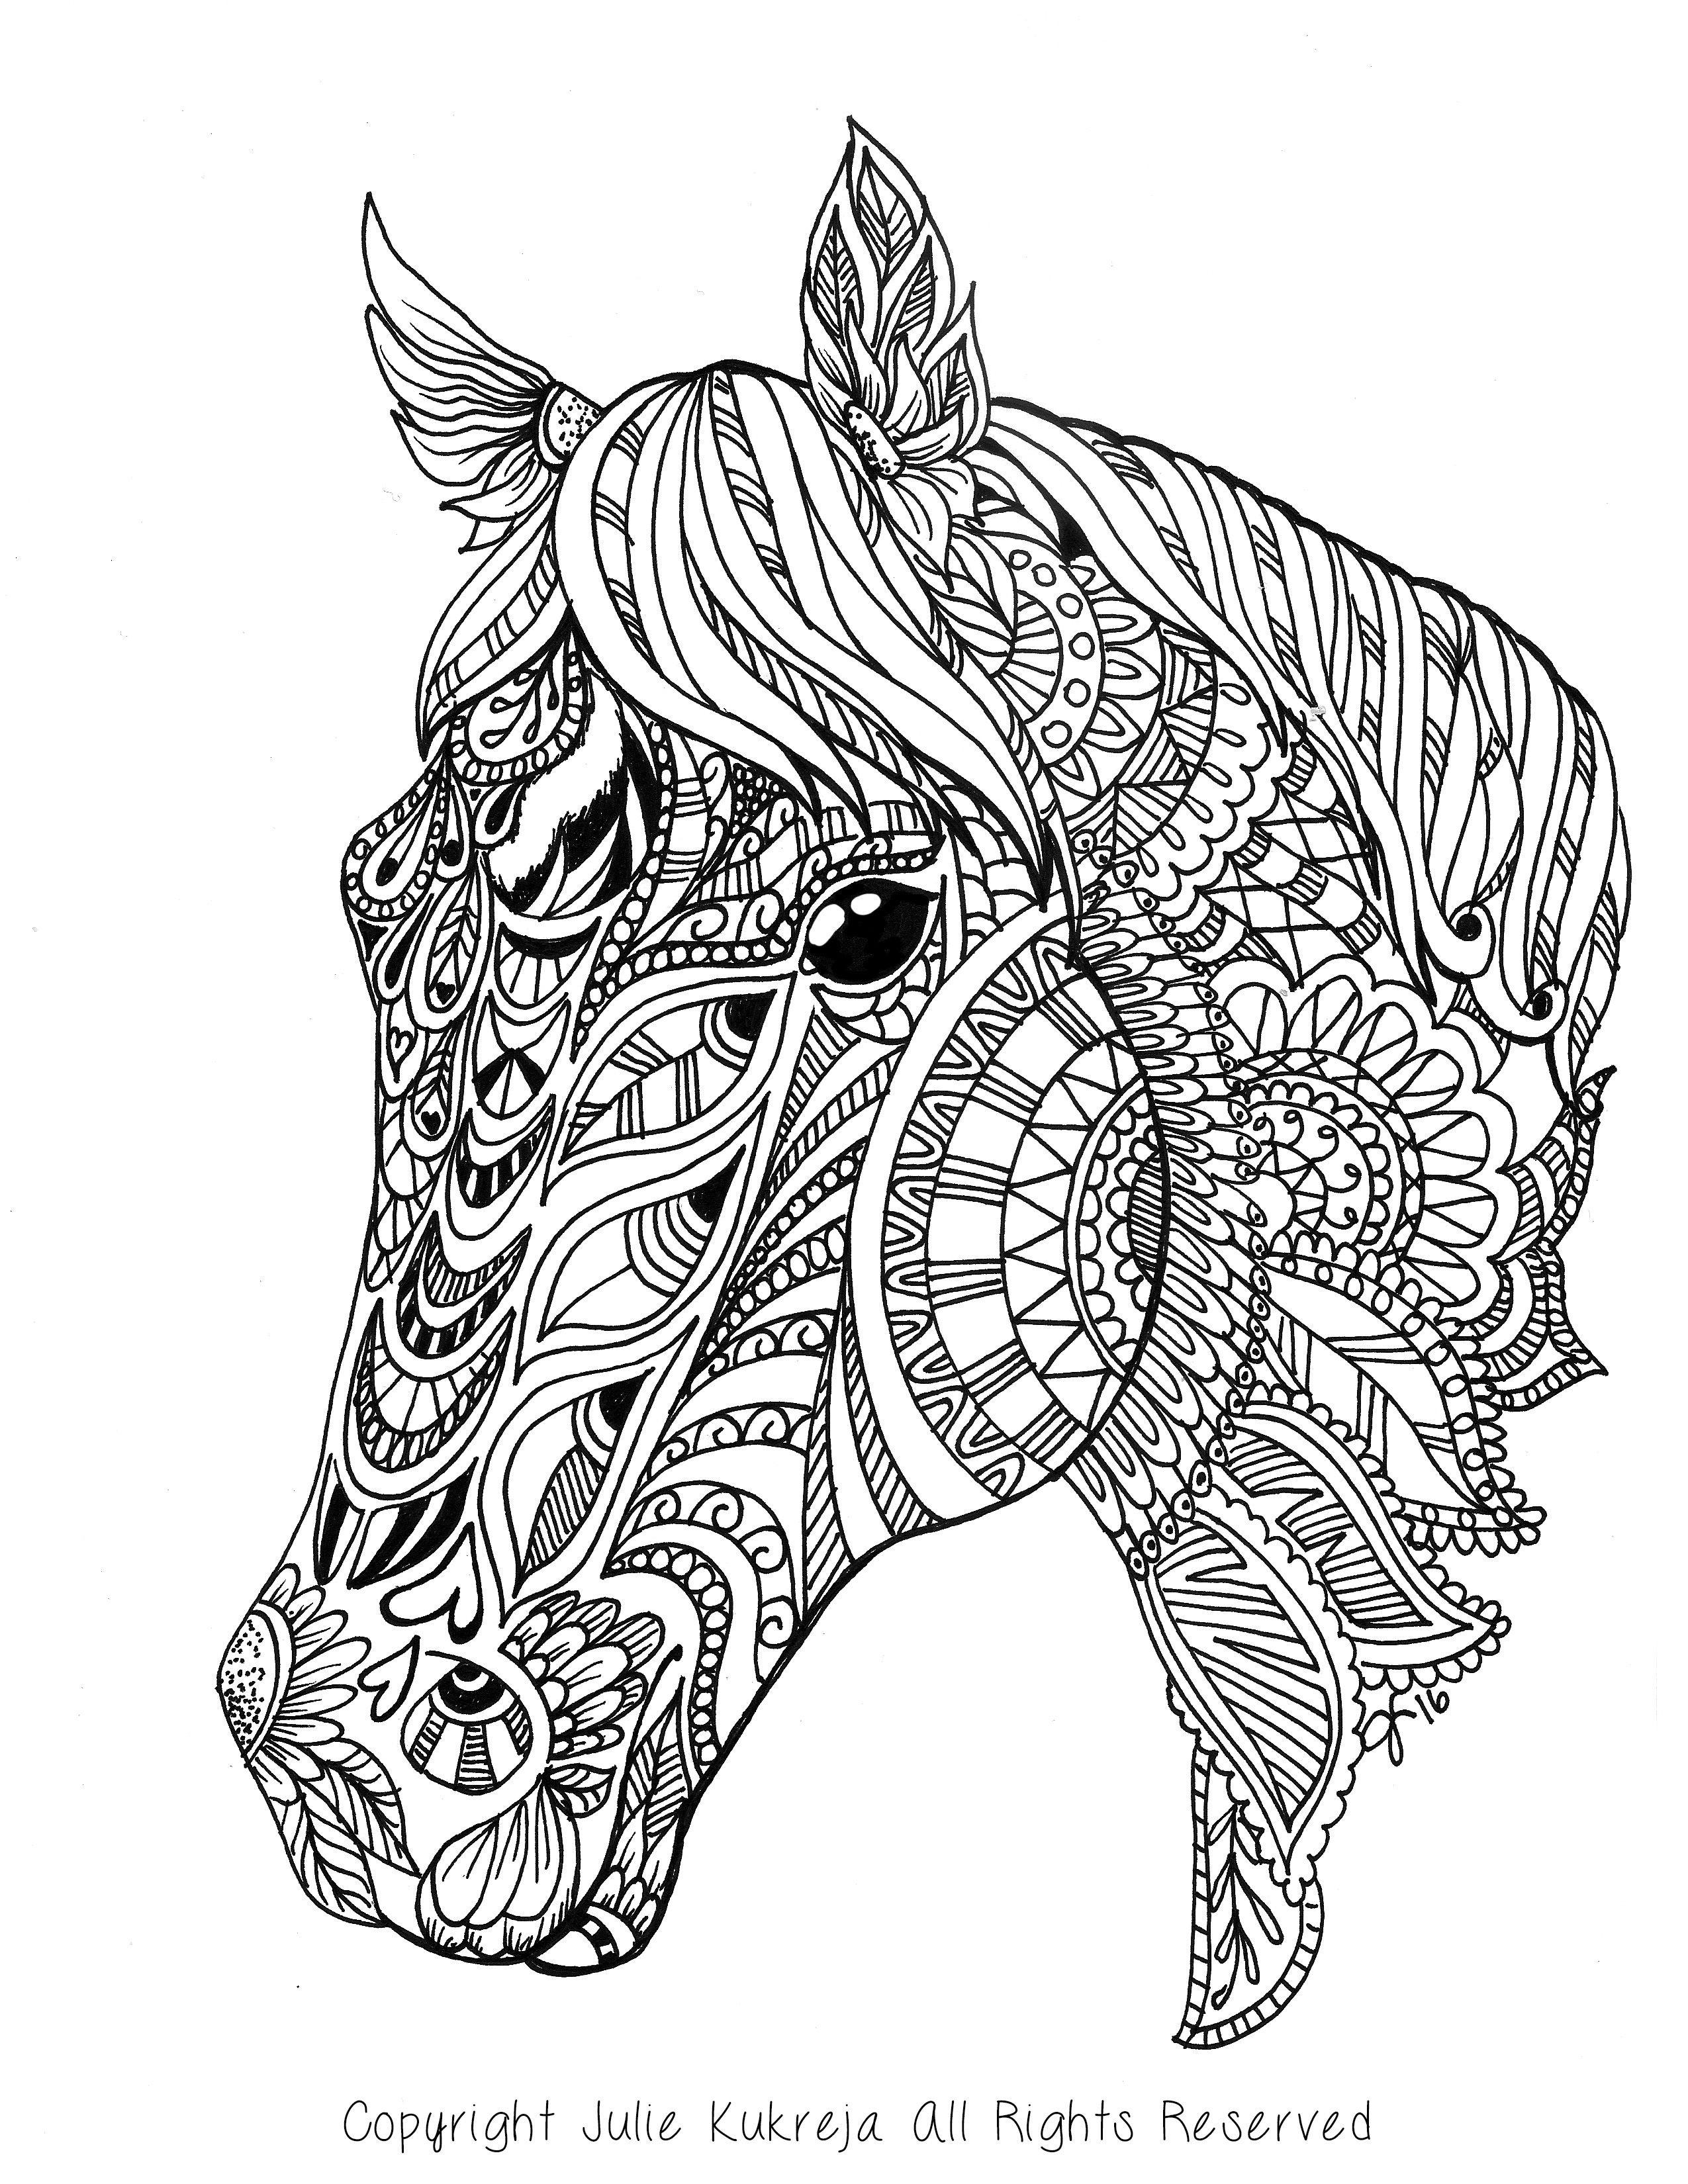 Best ideas about Horses Coloring Pages For Adults . Save or Pin Custom Pet Portrait horse adult coloring book style by Now.